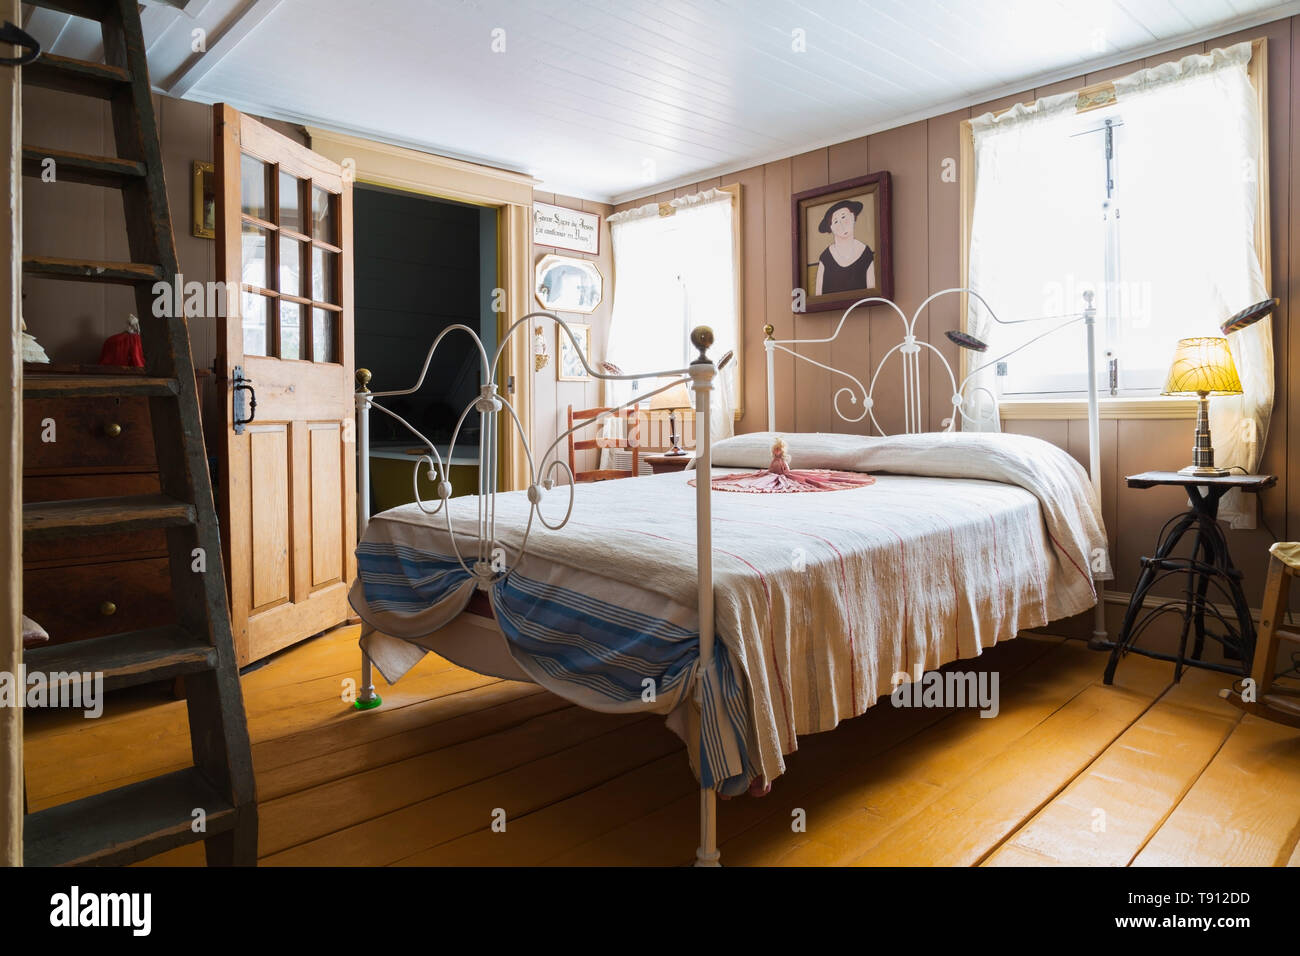 Double Bed With White Painted Wrought Iron Headboard And Footboard With Brass Ball Finials In Upstairs